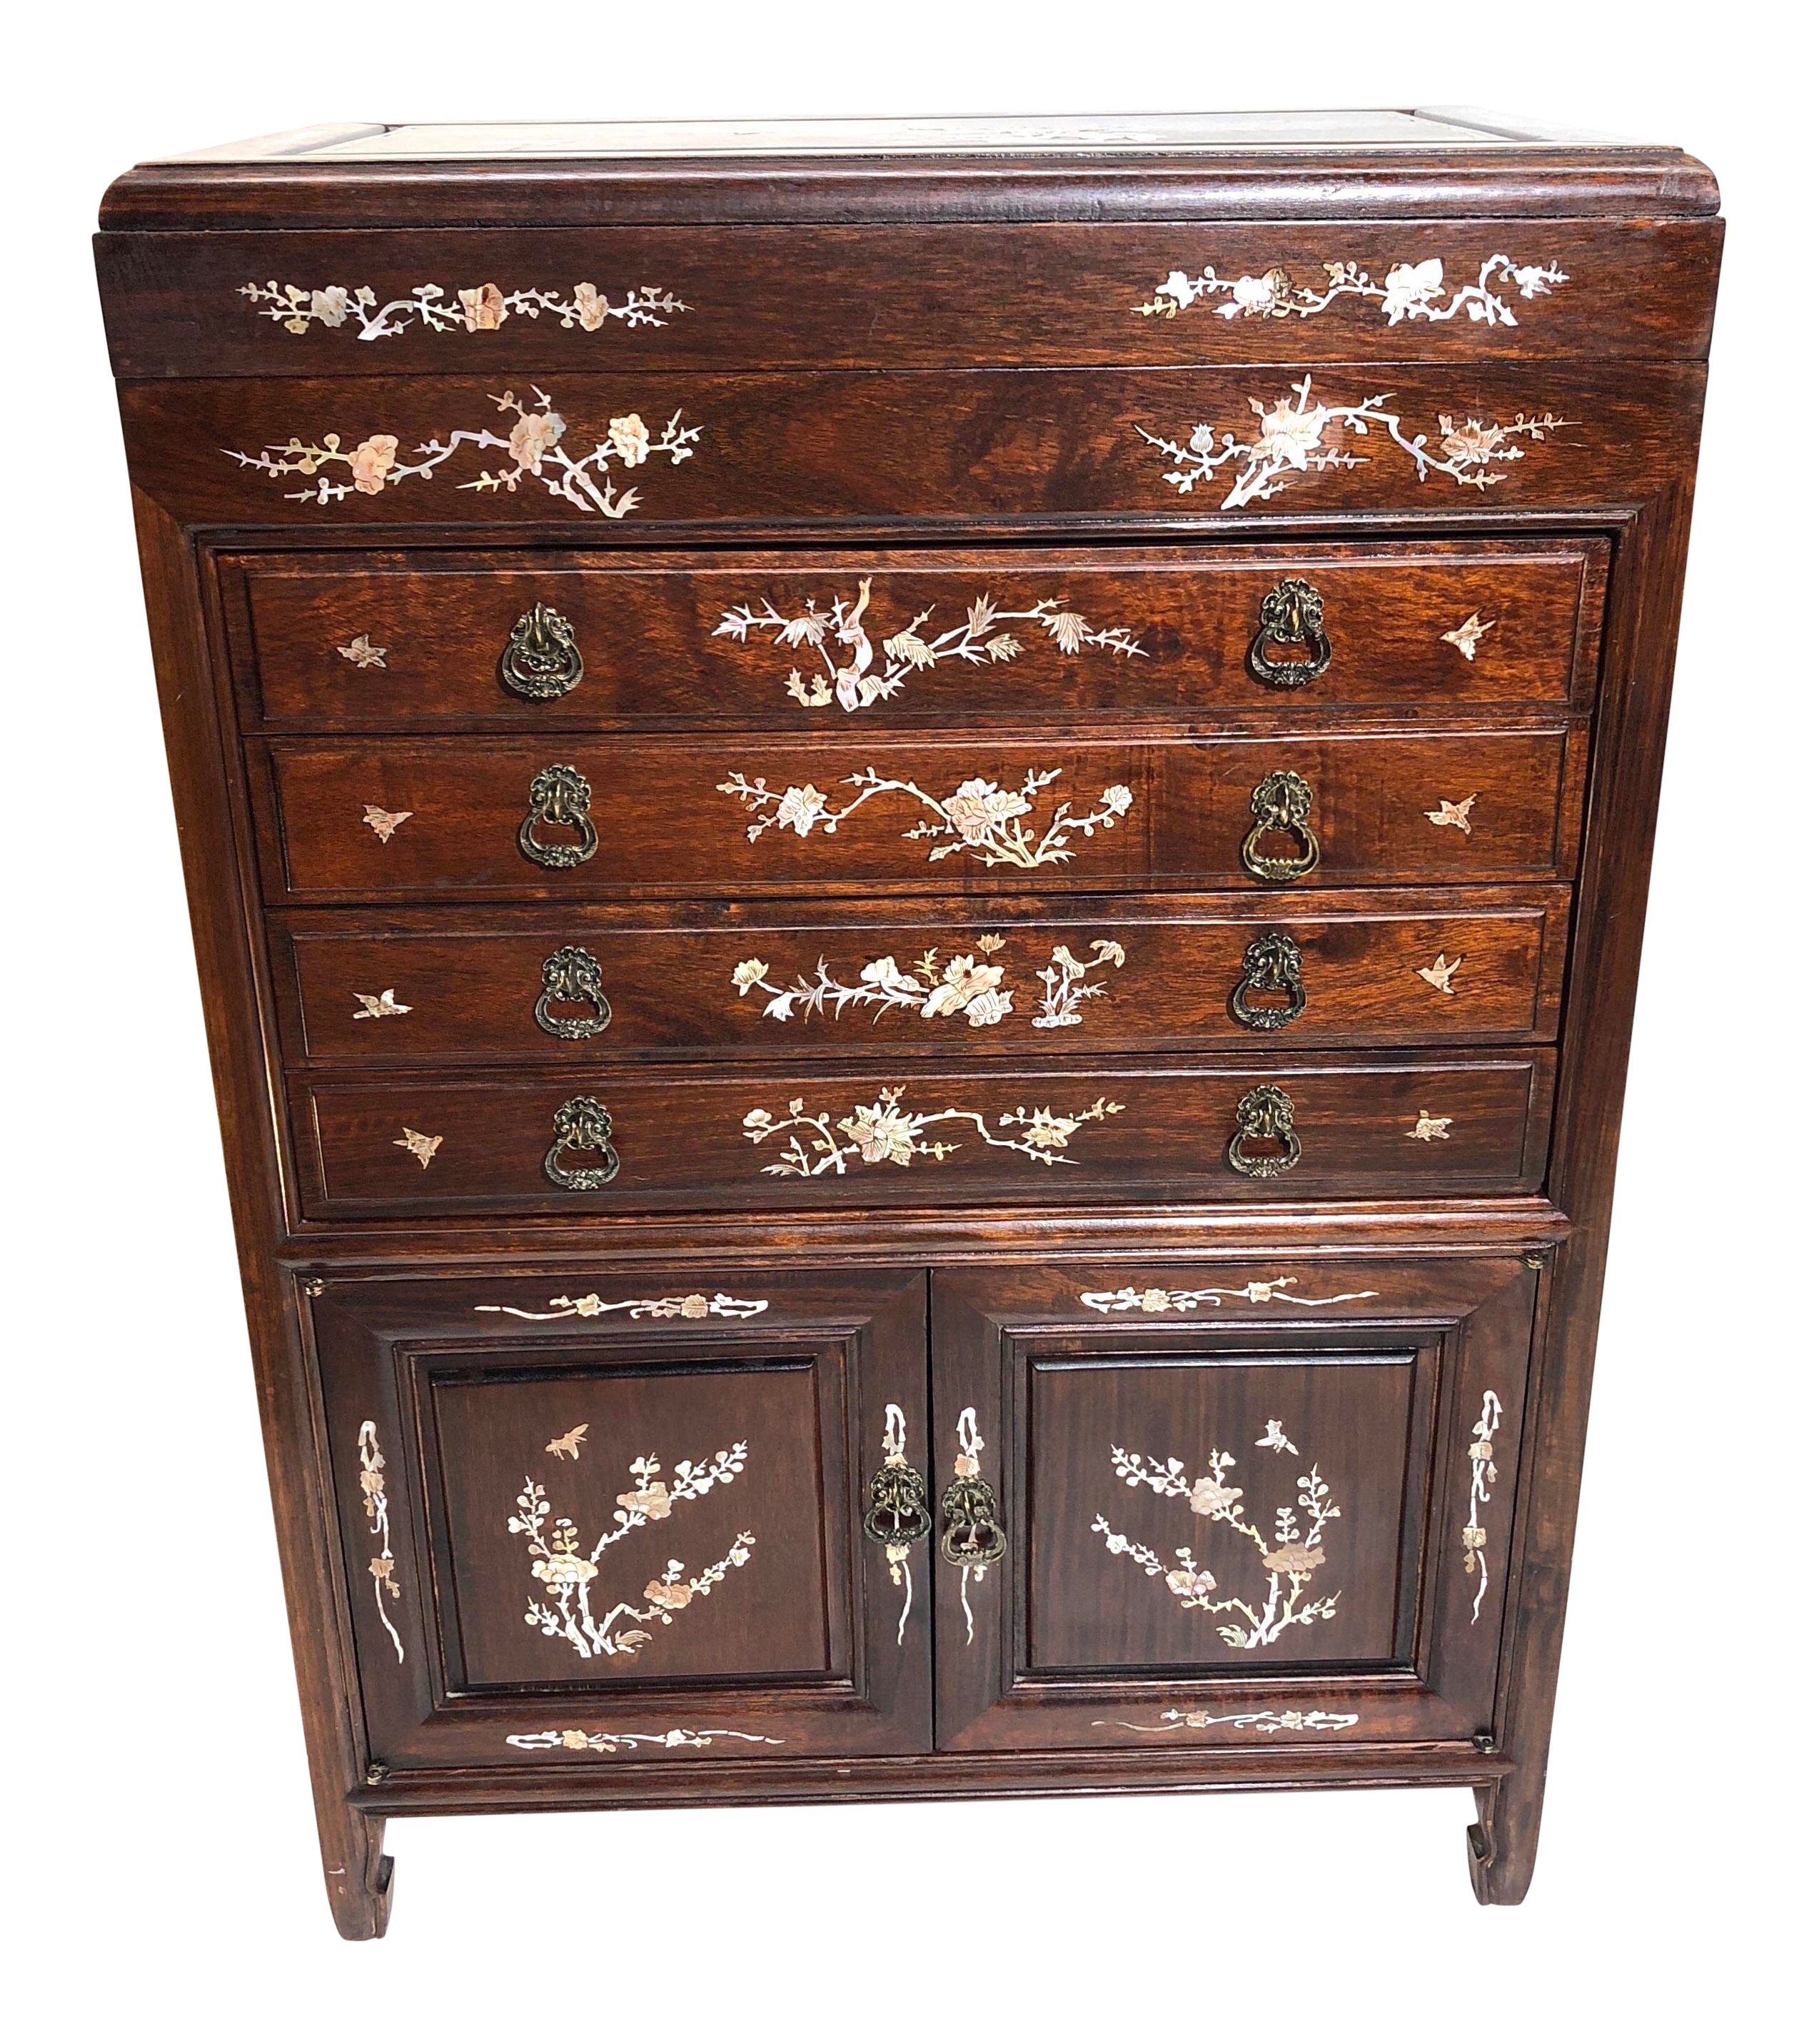 Chinoiserie Rosewood U0026 Mother Of Pearl Silverware/Flatware Cabinet/Chest  For Sale